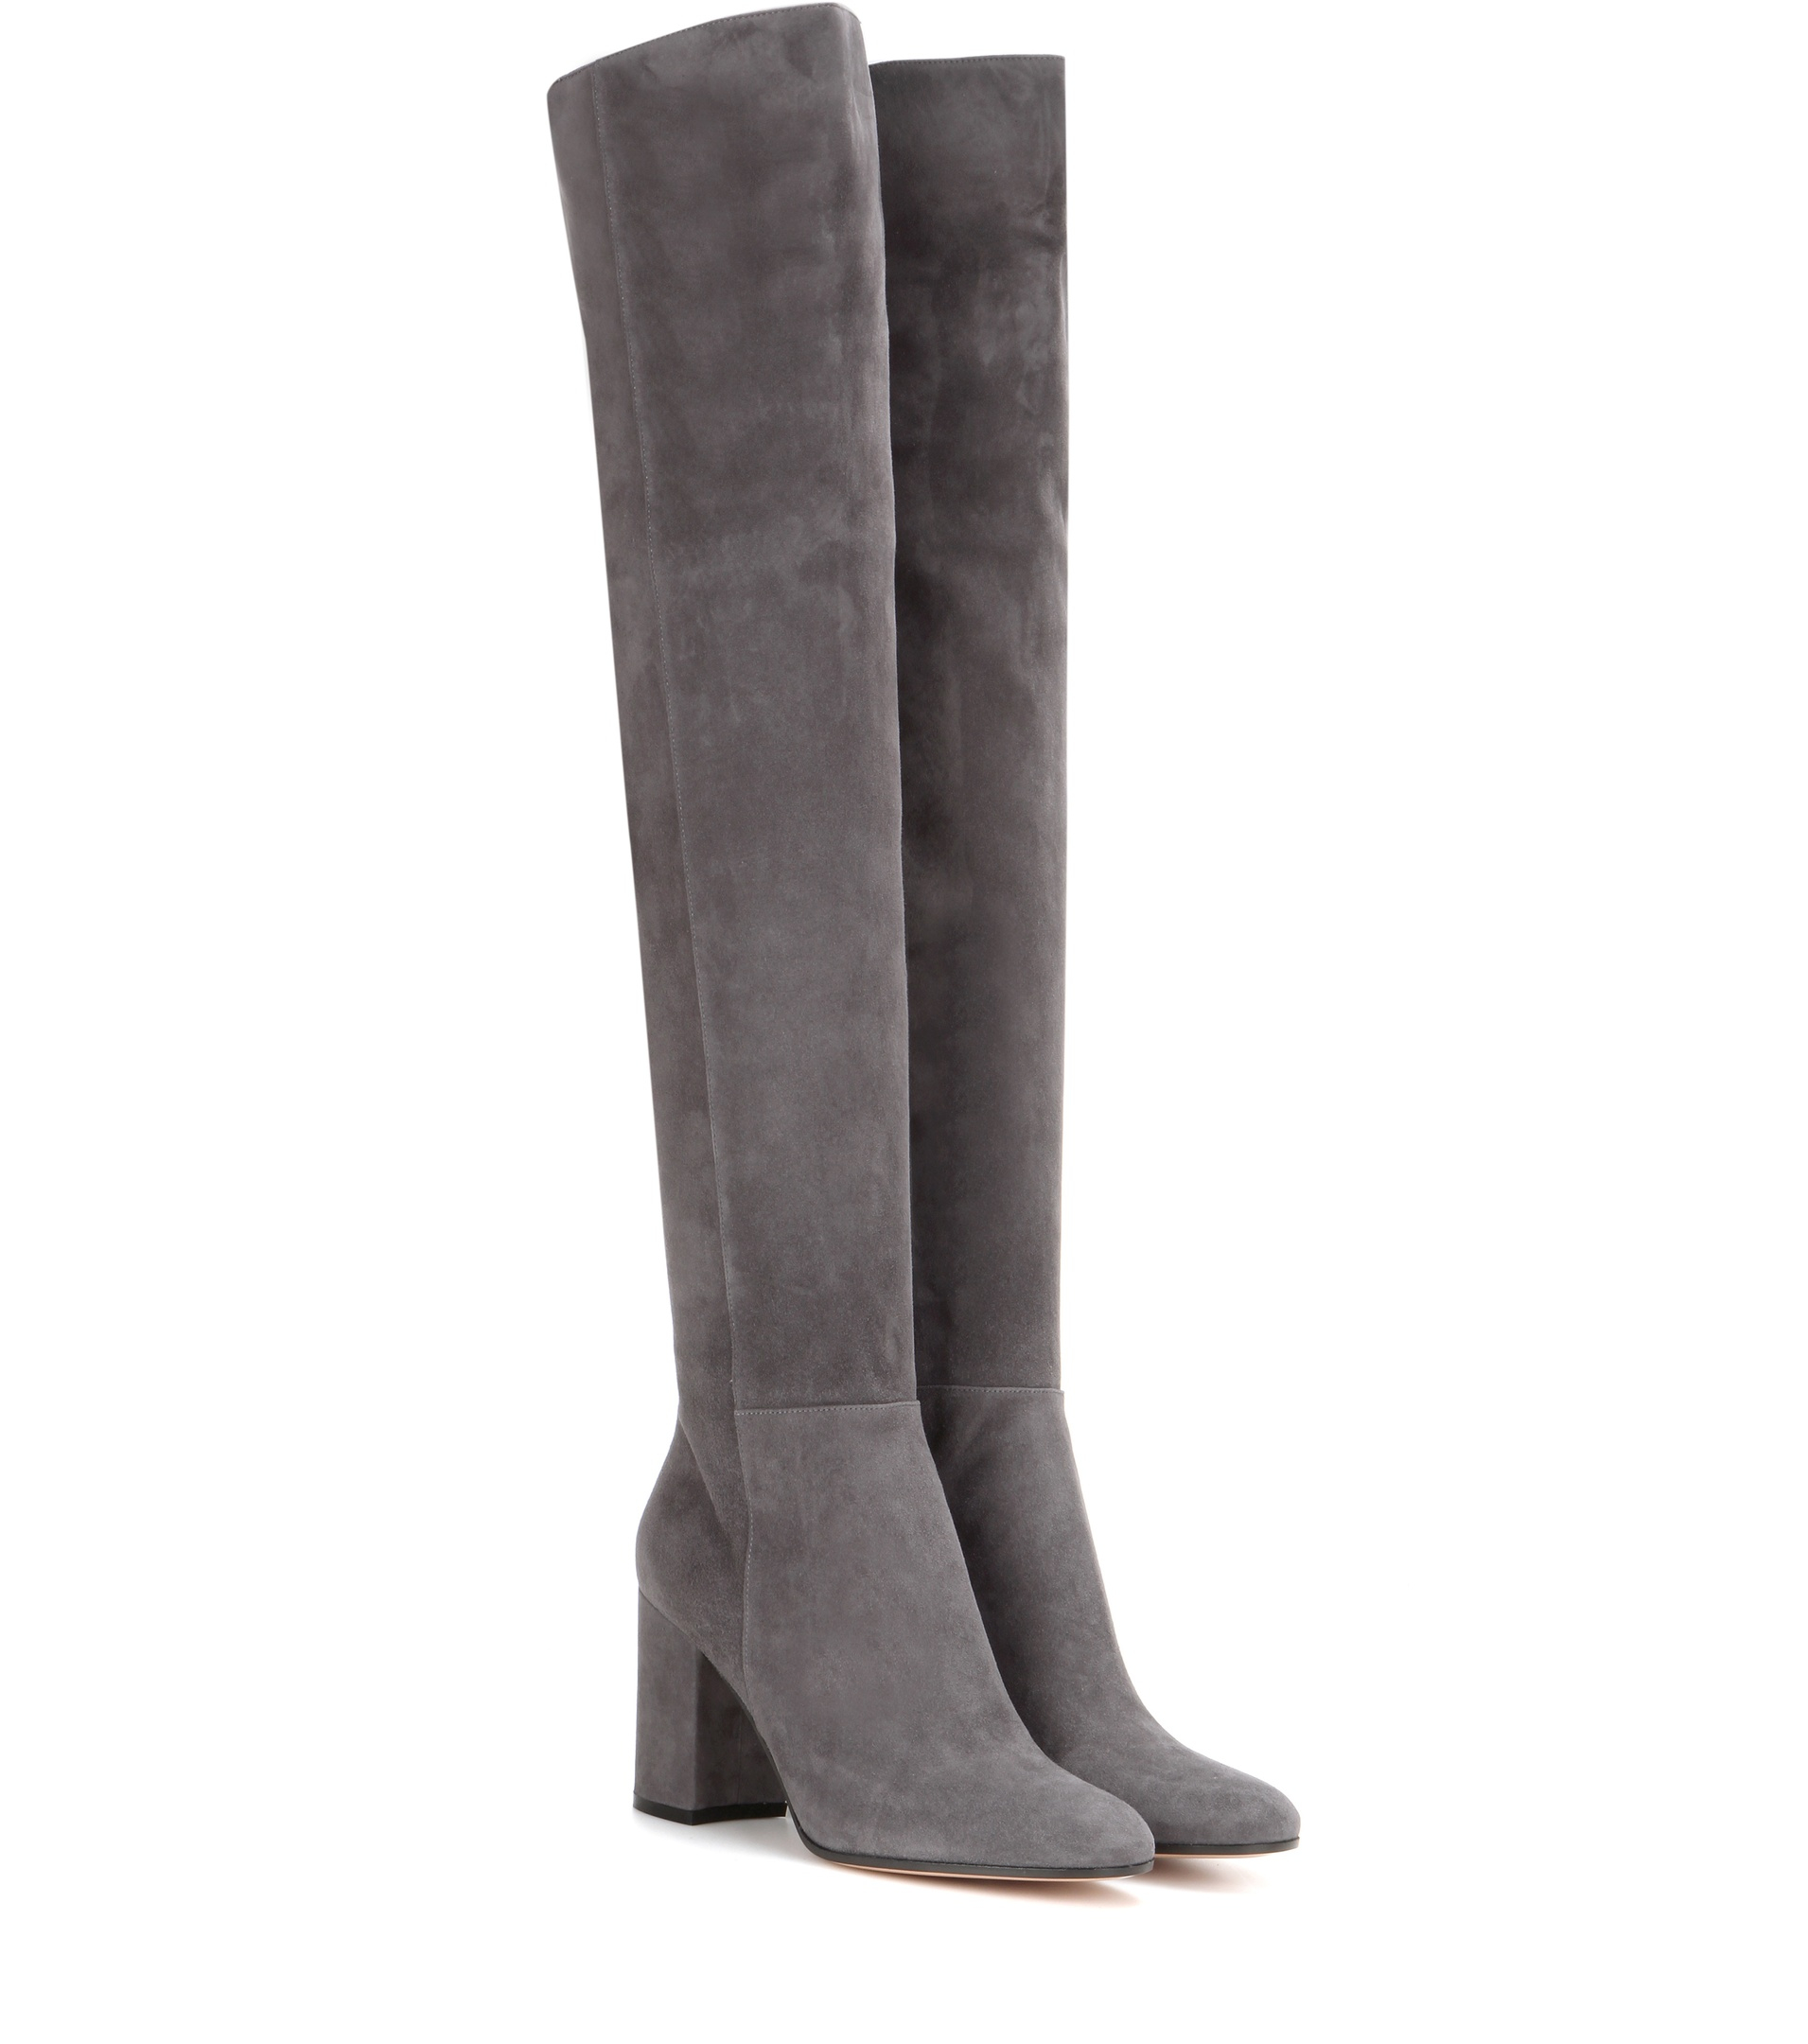 gianvito rolling 85 the knee suede boots in